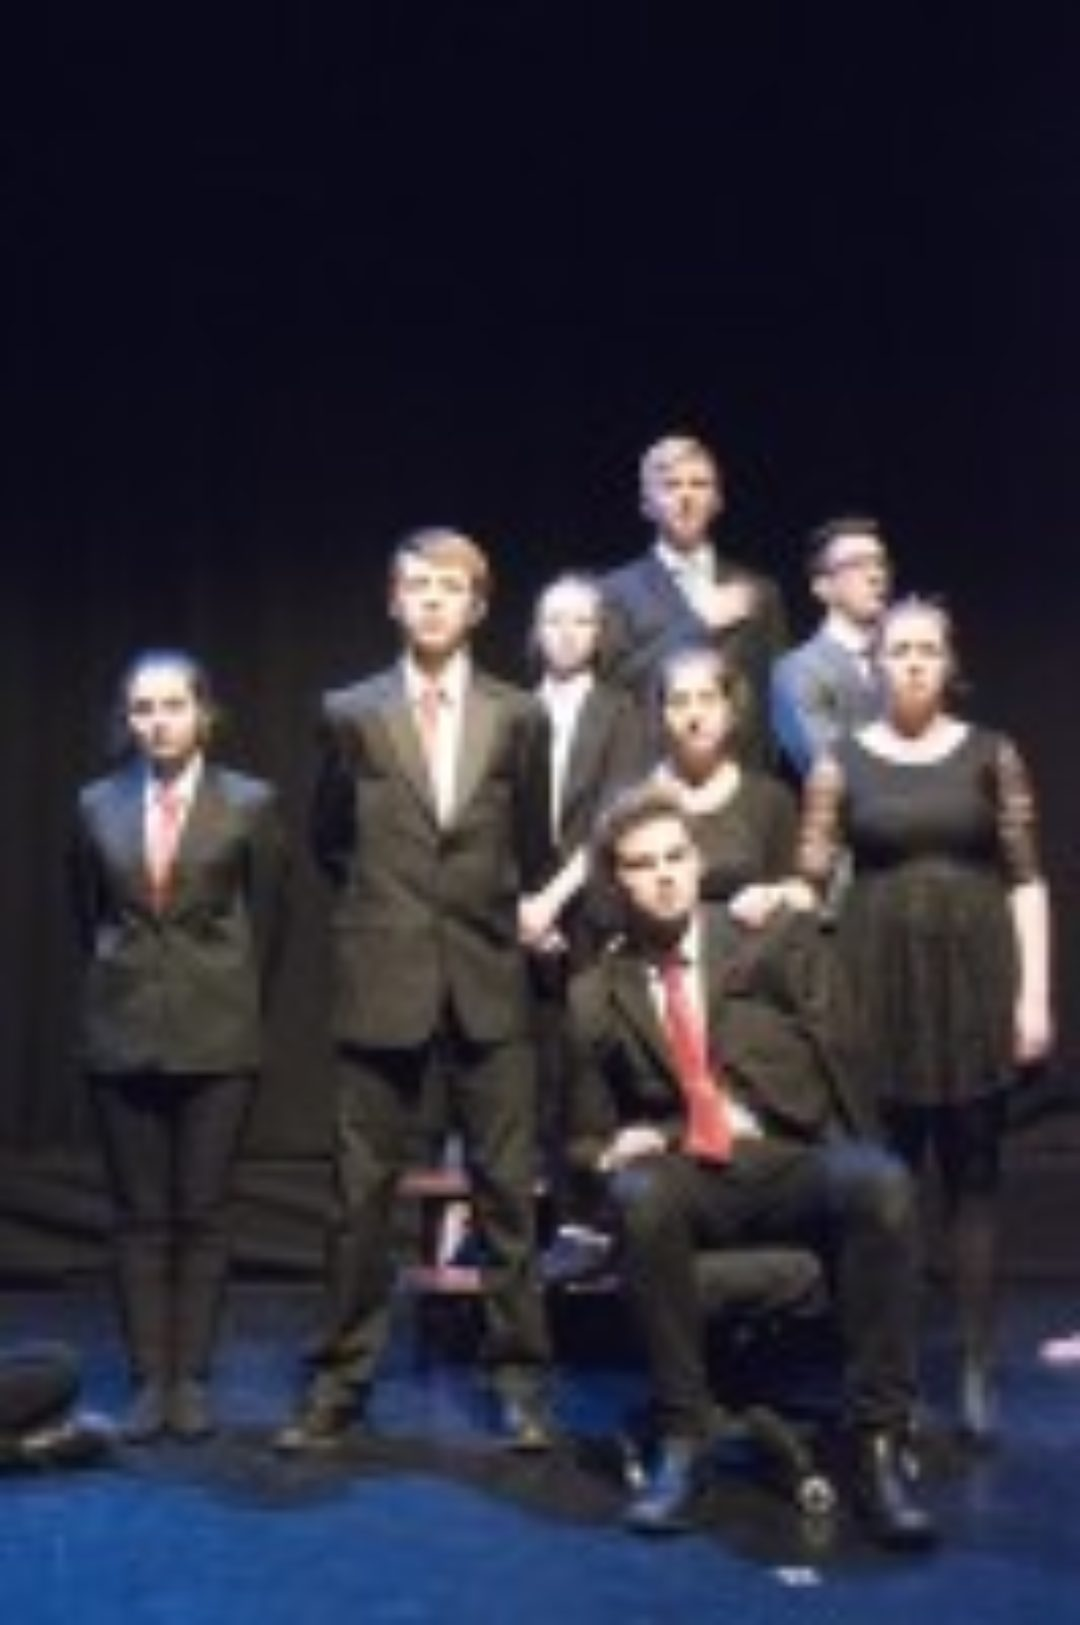 newton-abbot-college-students-perform-shakespeares-richard-iii-at-exeter-phoenix-ofsted-good